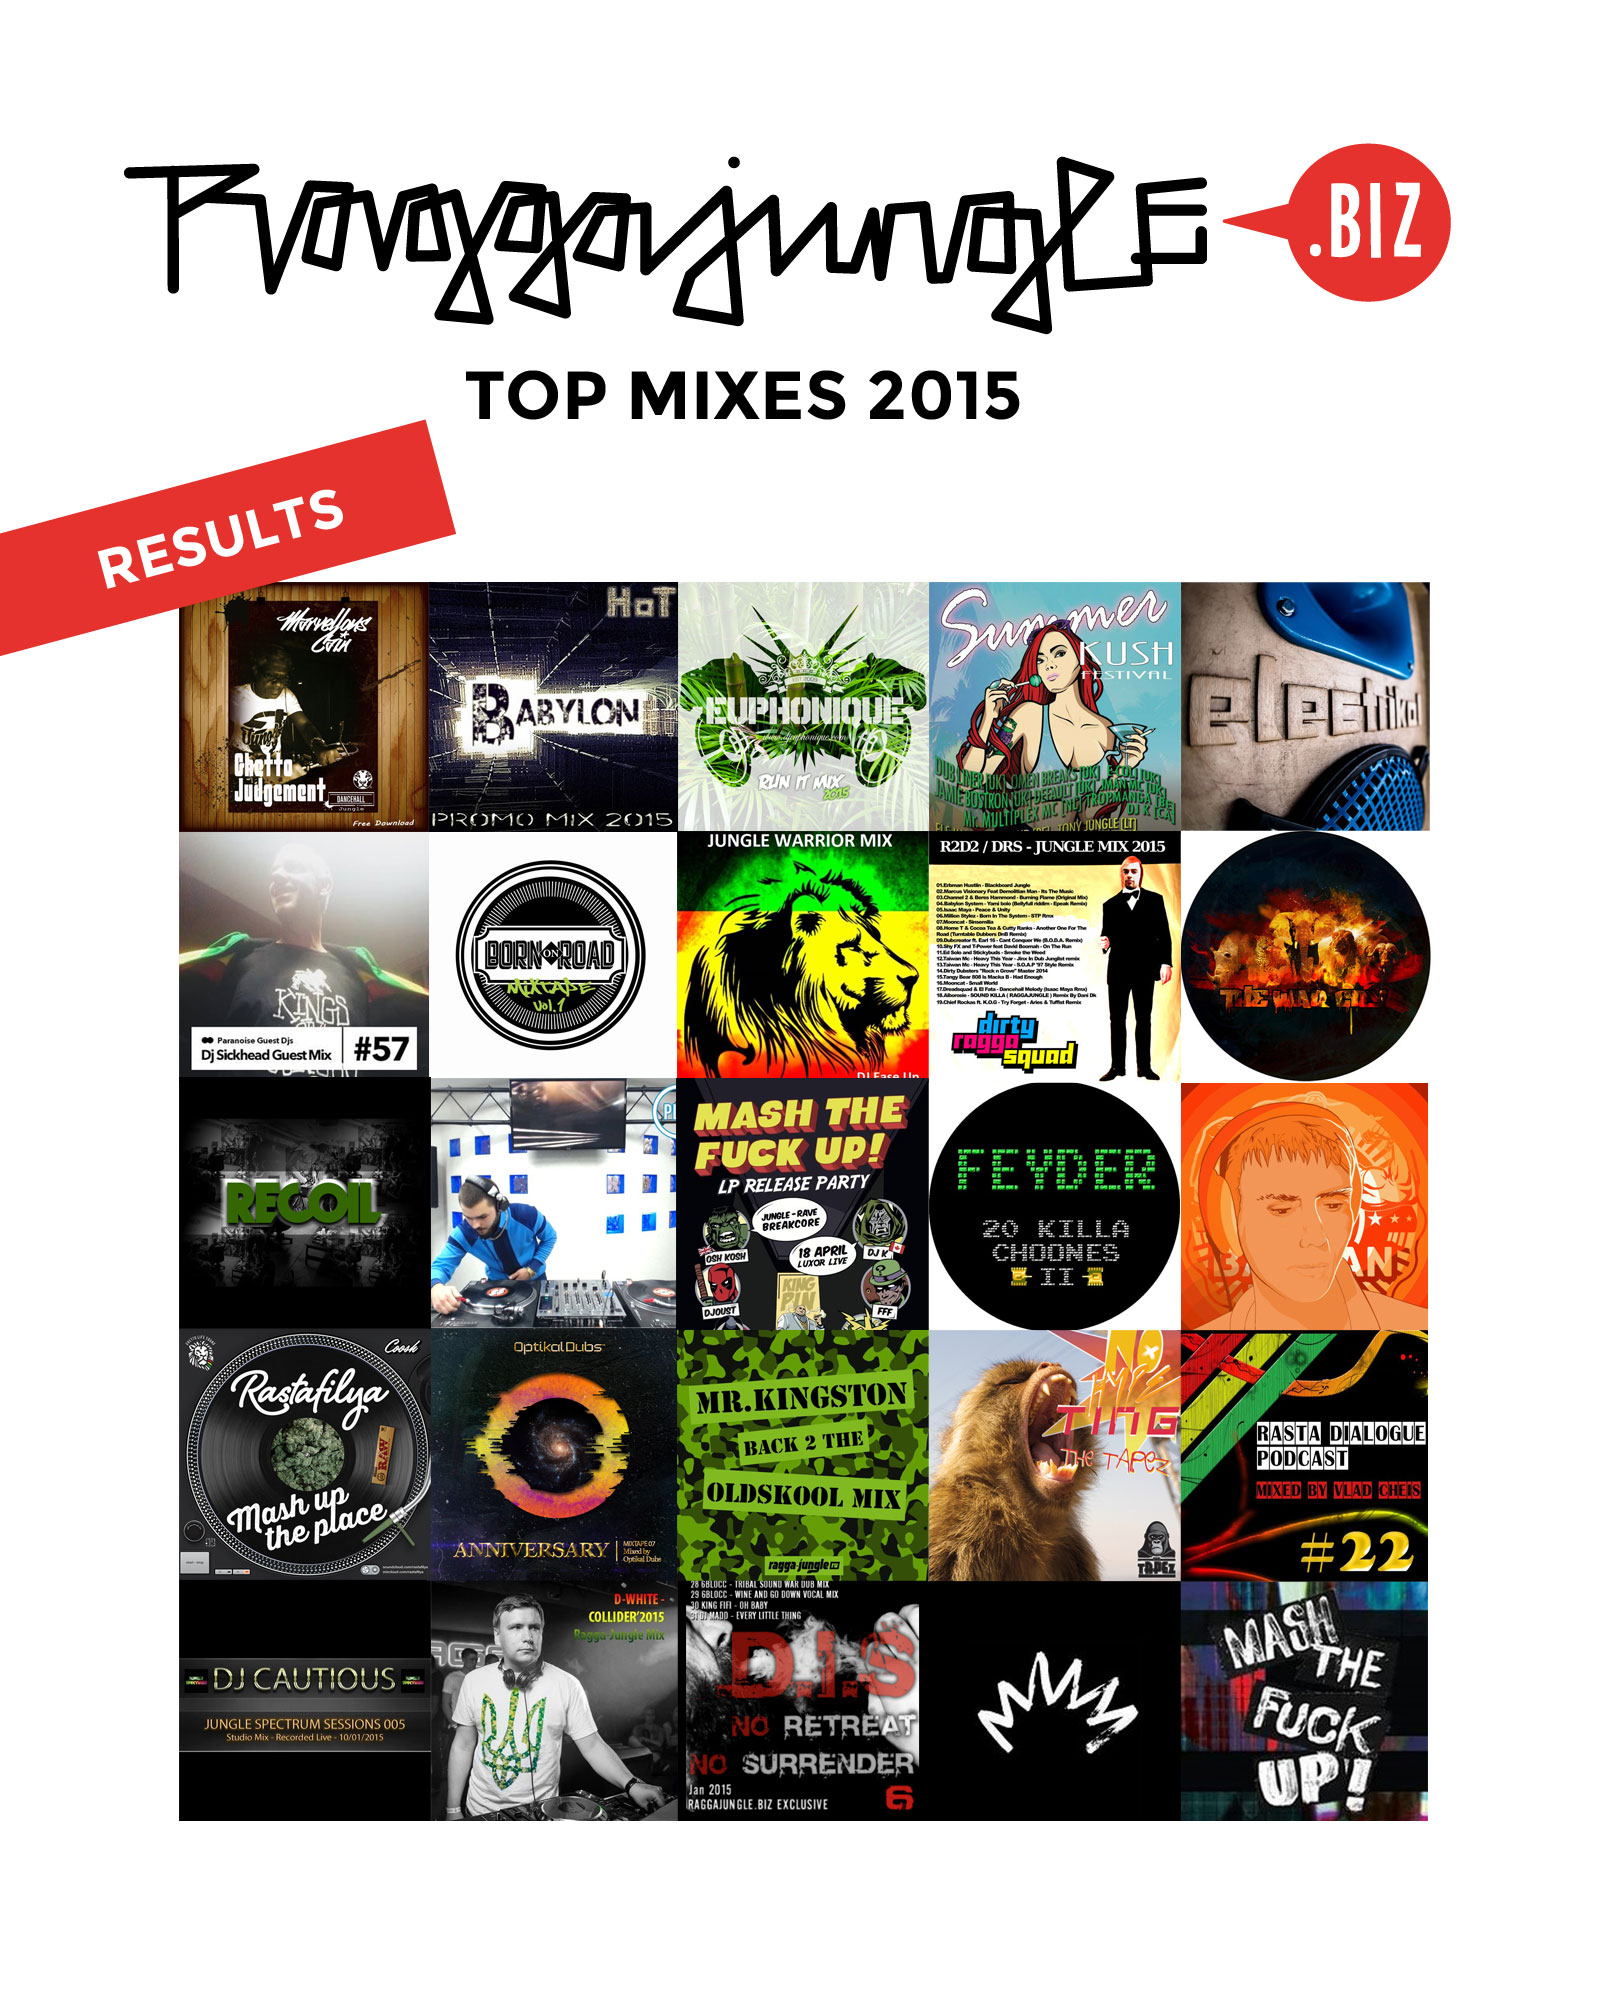 top-mixes-2015-results